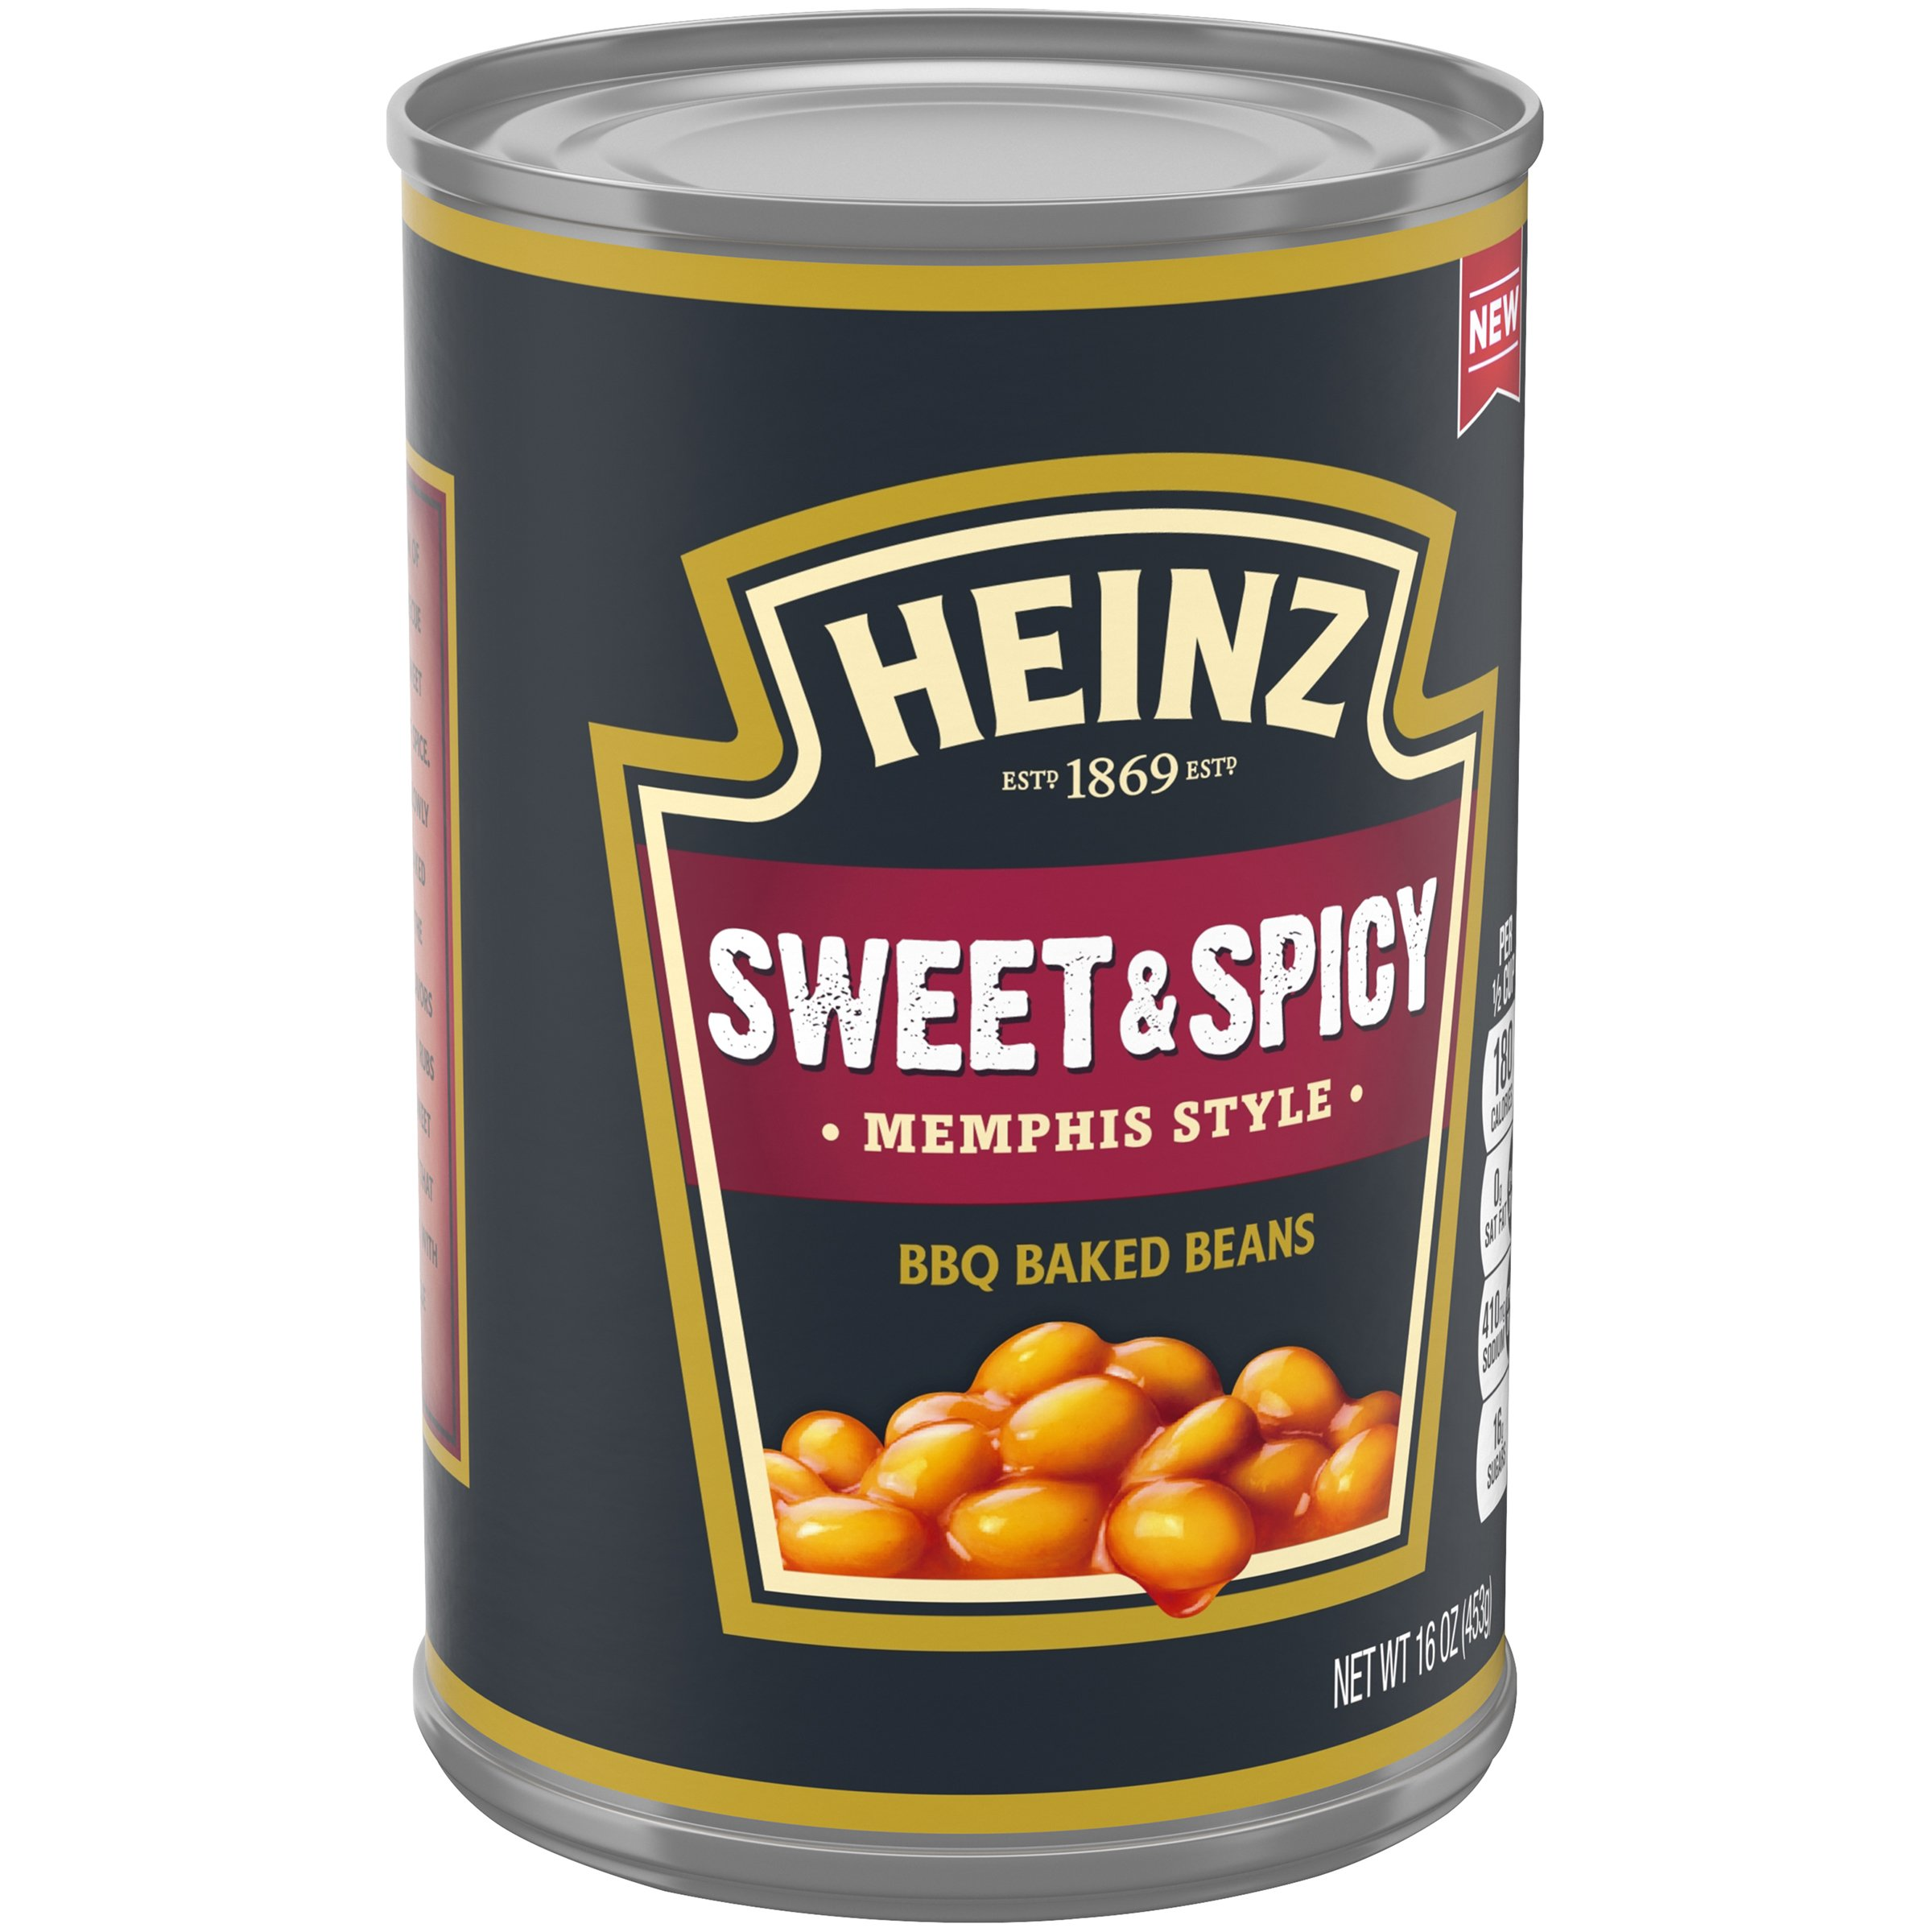 Heinz Memphis Style Sweet & Spicy BBQ Baked Beans Can, 16 Ounce (Pack of 12)